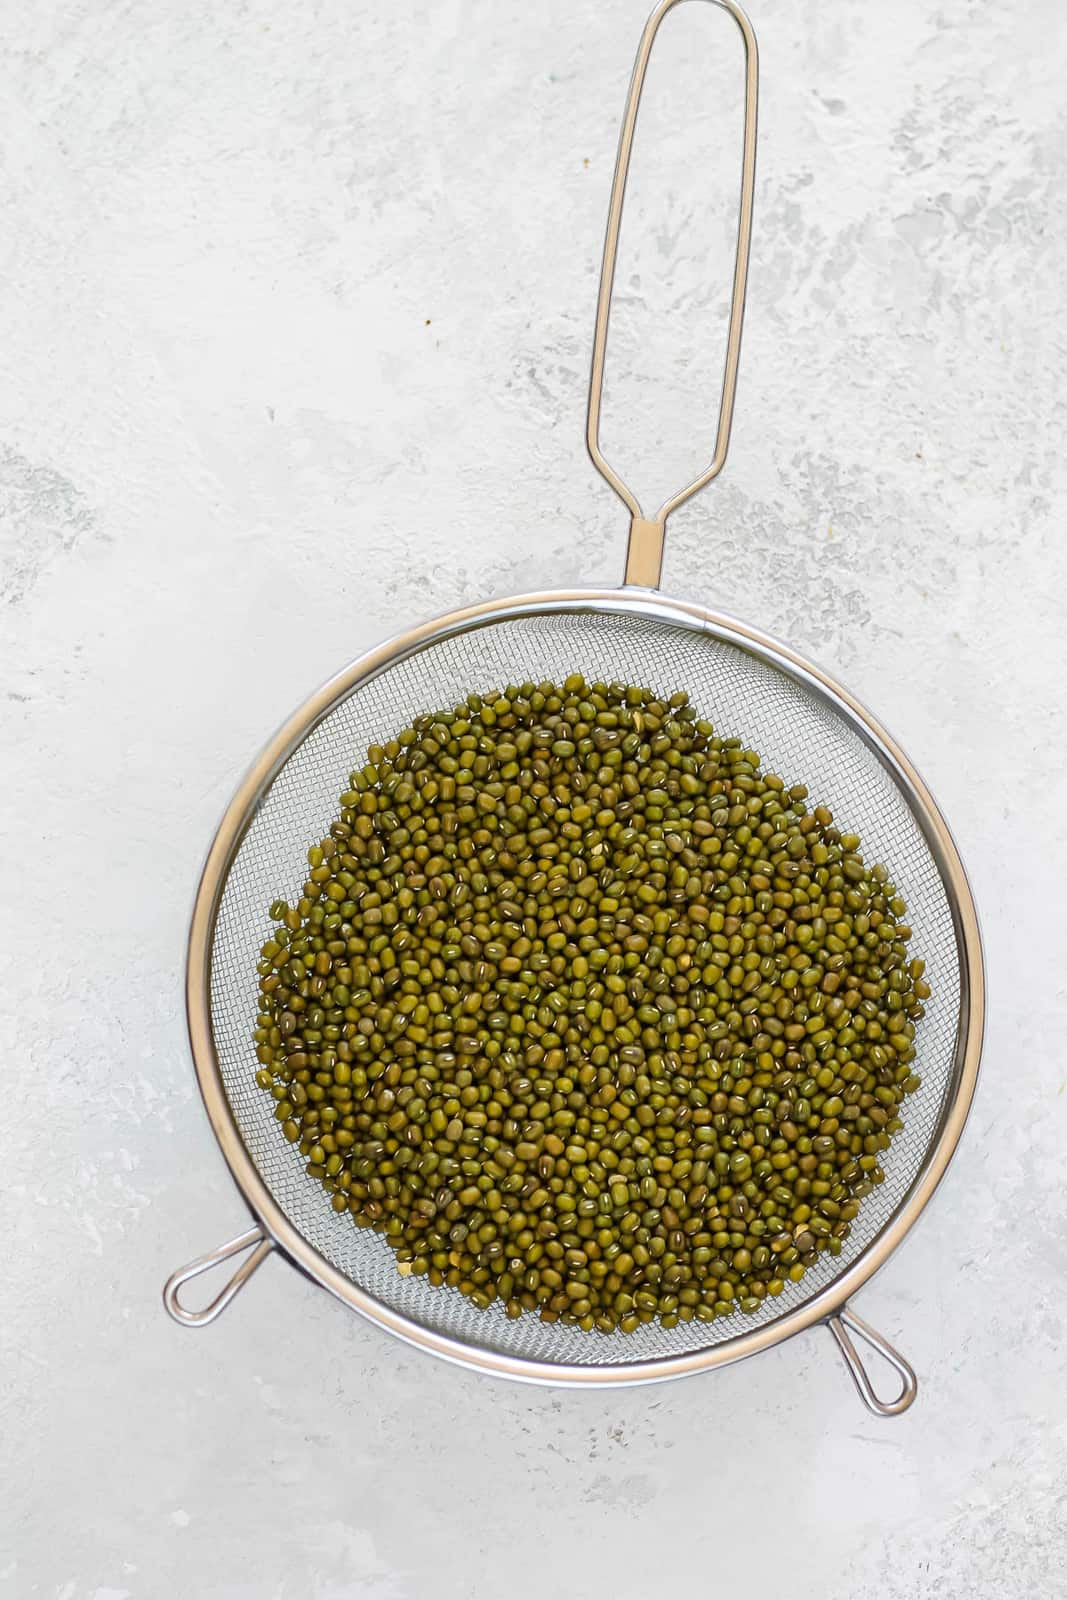 mung beans in a mesh strainer